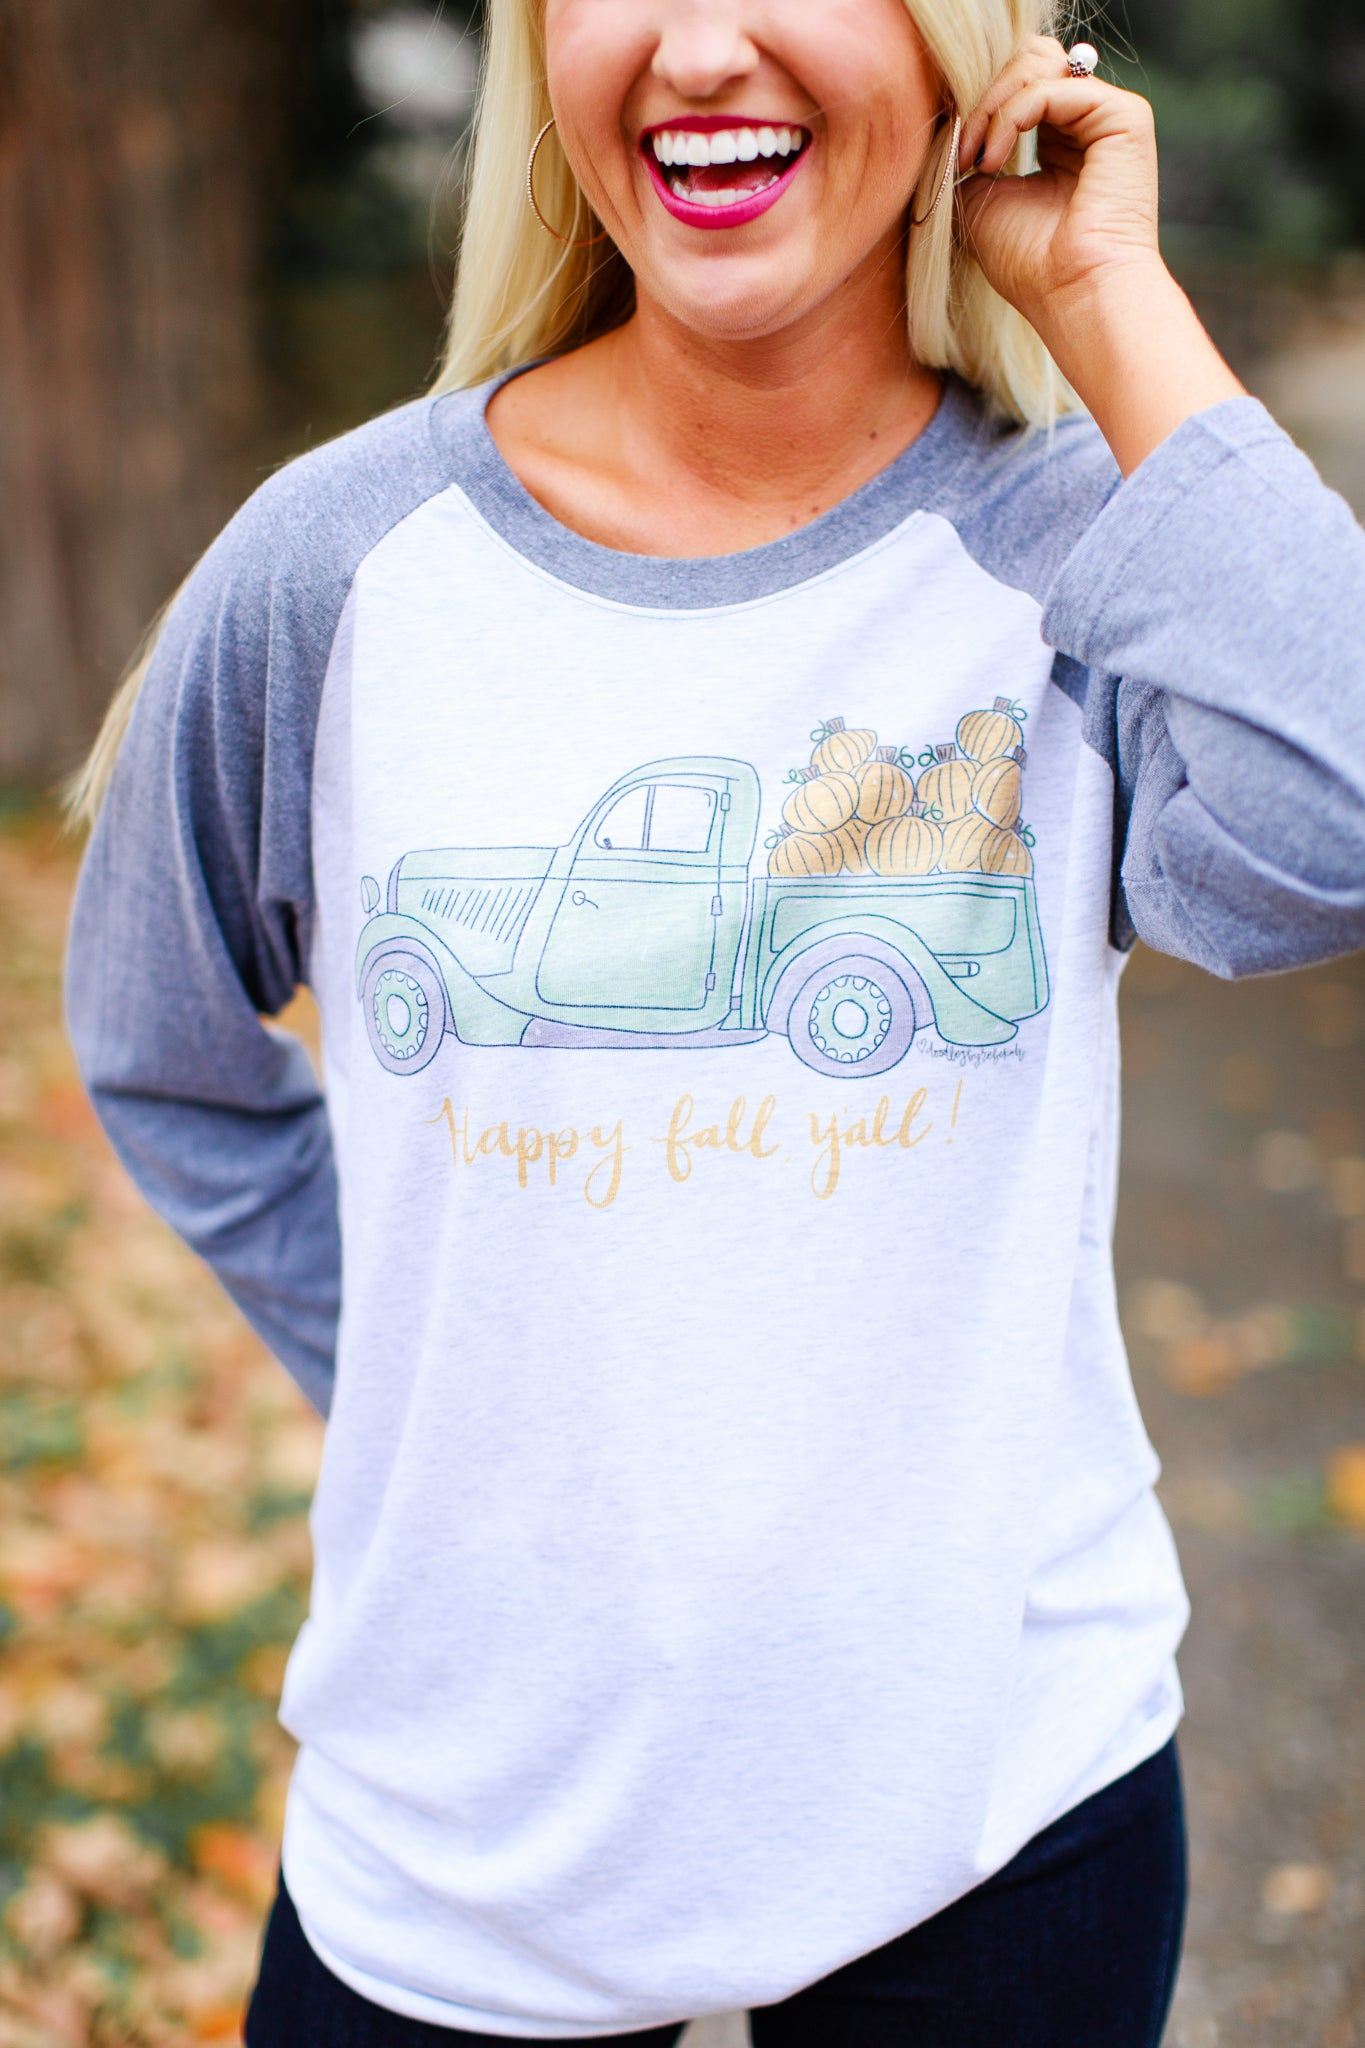 Happy Fall Y'all Raglan Tee